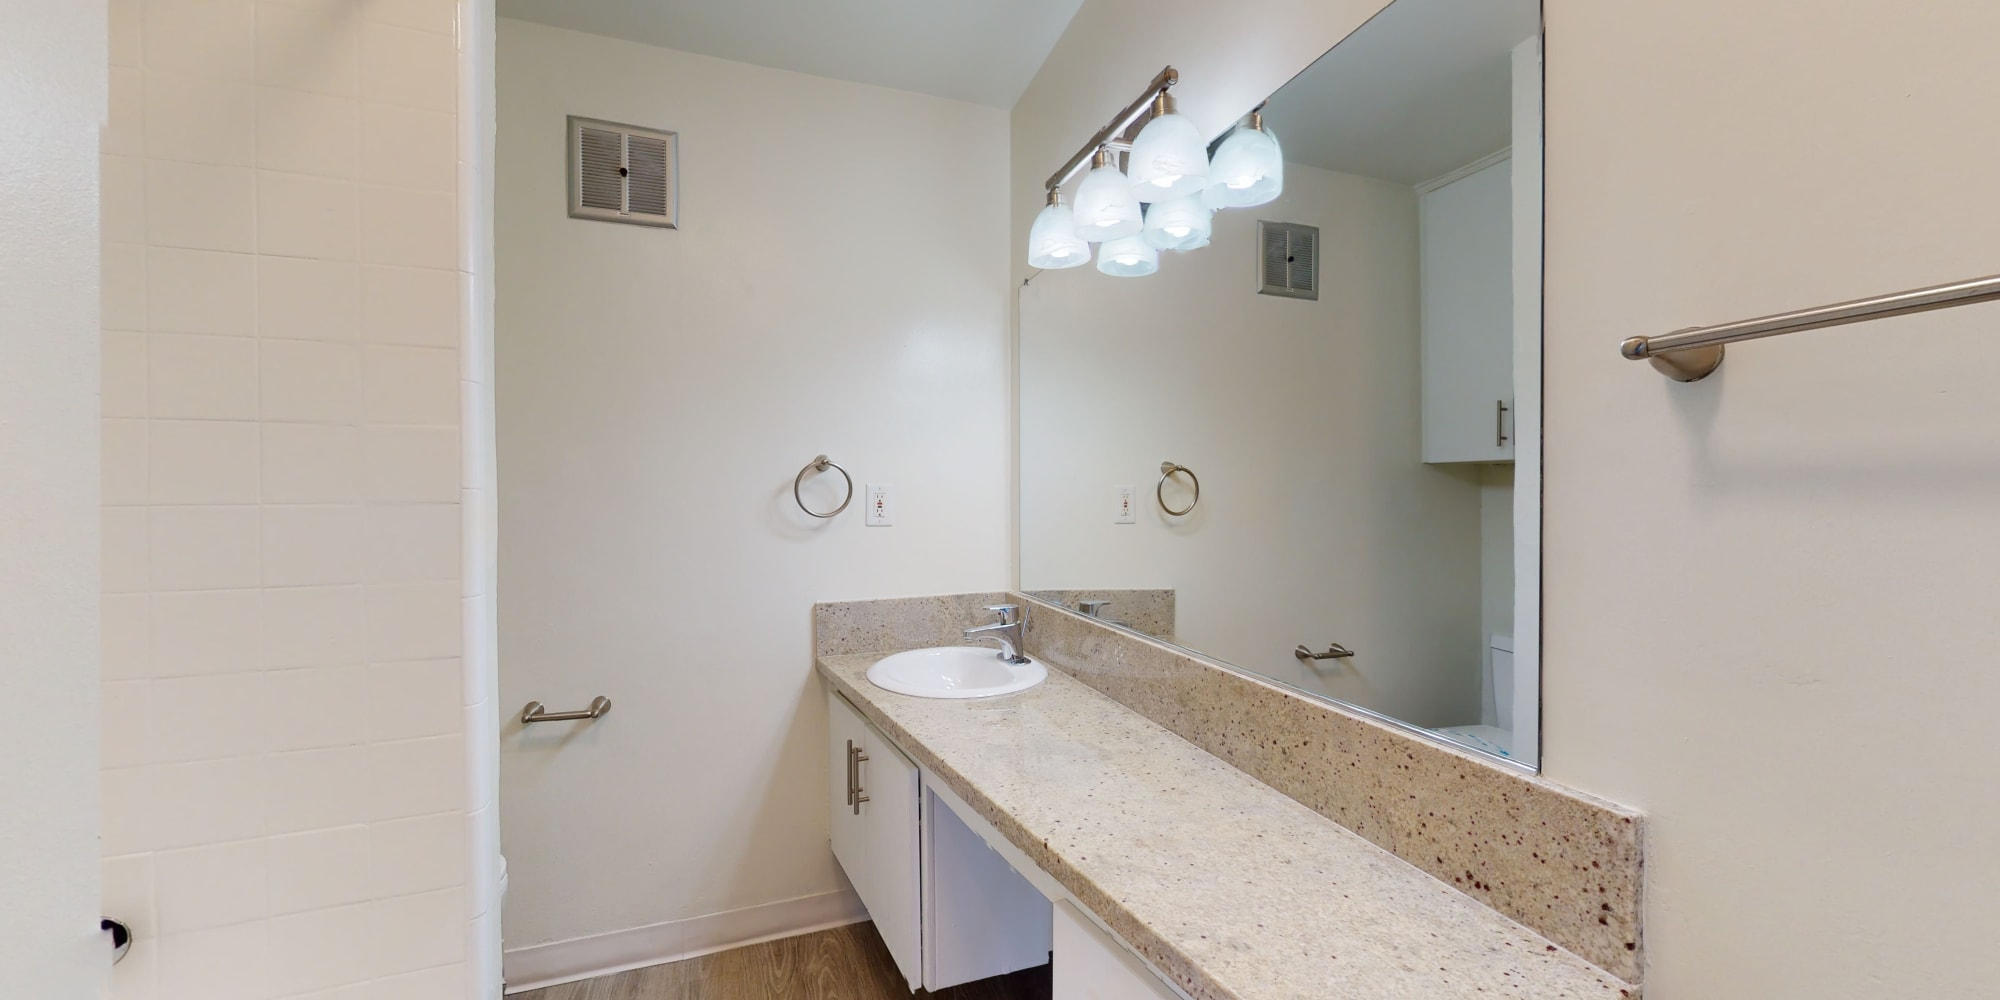 Classic apartment's bathroom with a granite countertop at Sunset Barrington Gardens in Los Angeles, California